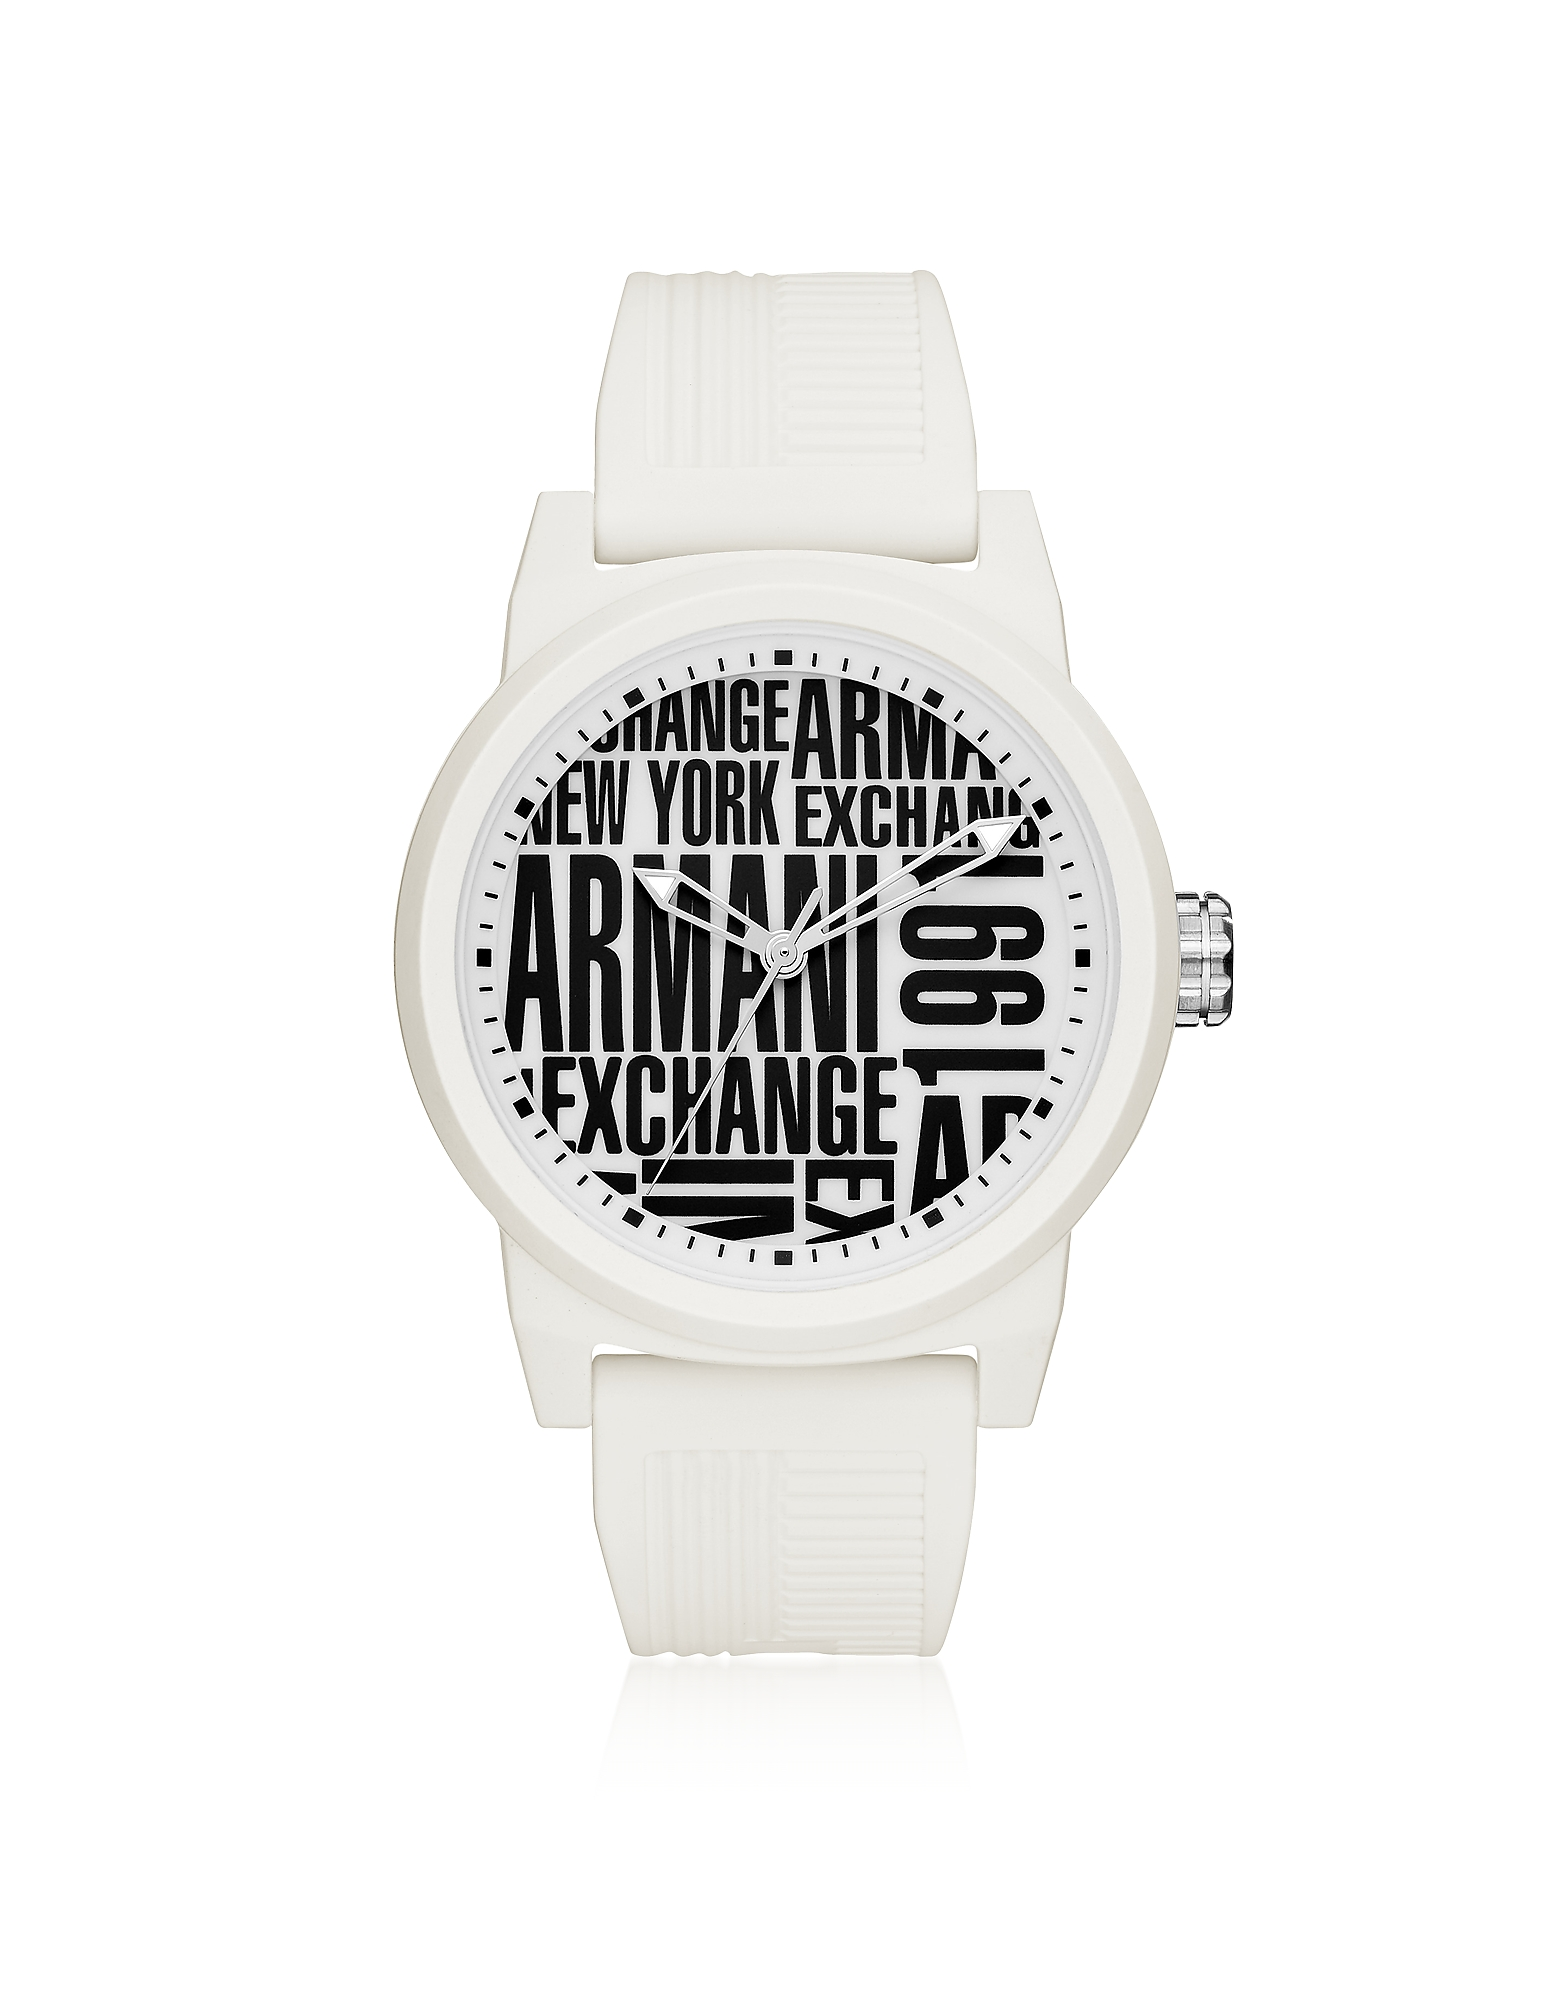 Armani Exchange Men's Watches, Atlc White Silicone Men's Watch